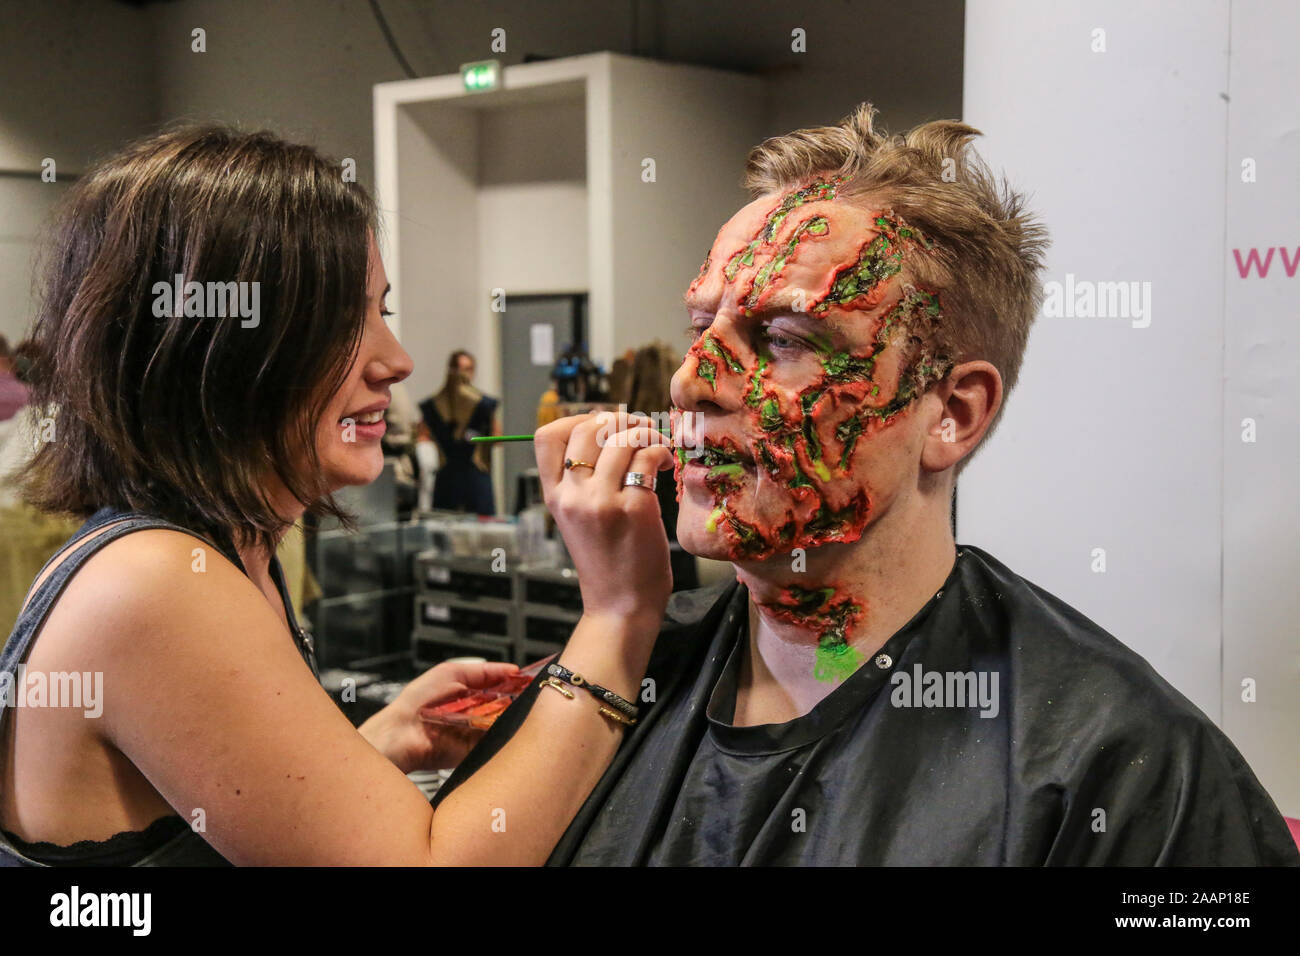 Coventry, UK. 23rd Nov, 2019. The sixth annual event billed as The educational event for Prosthetic and media make up was held in Coventry Ricoh Arena A day full of talks and advice from top film industry professionals, beautiful body art, extraordinary exhibits, exciting competitions and shopping with leading specialist retailers. This is our sixth annual event which since its small beginnings has grown into THE annual makeup FX gathering Credit: Paul Quezada-Neiman/Alamy Live News Stock Photo